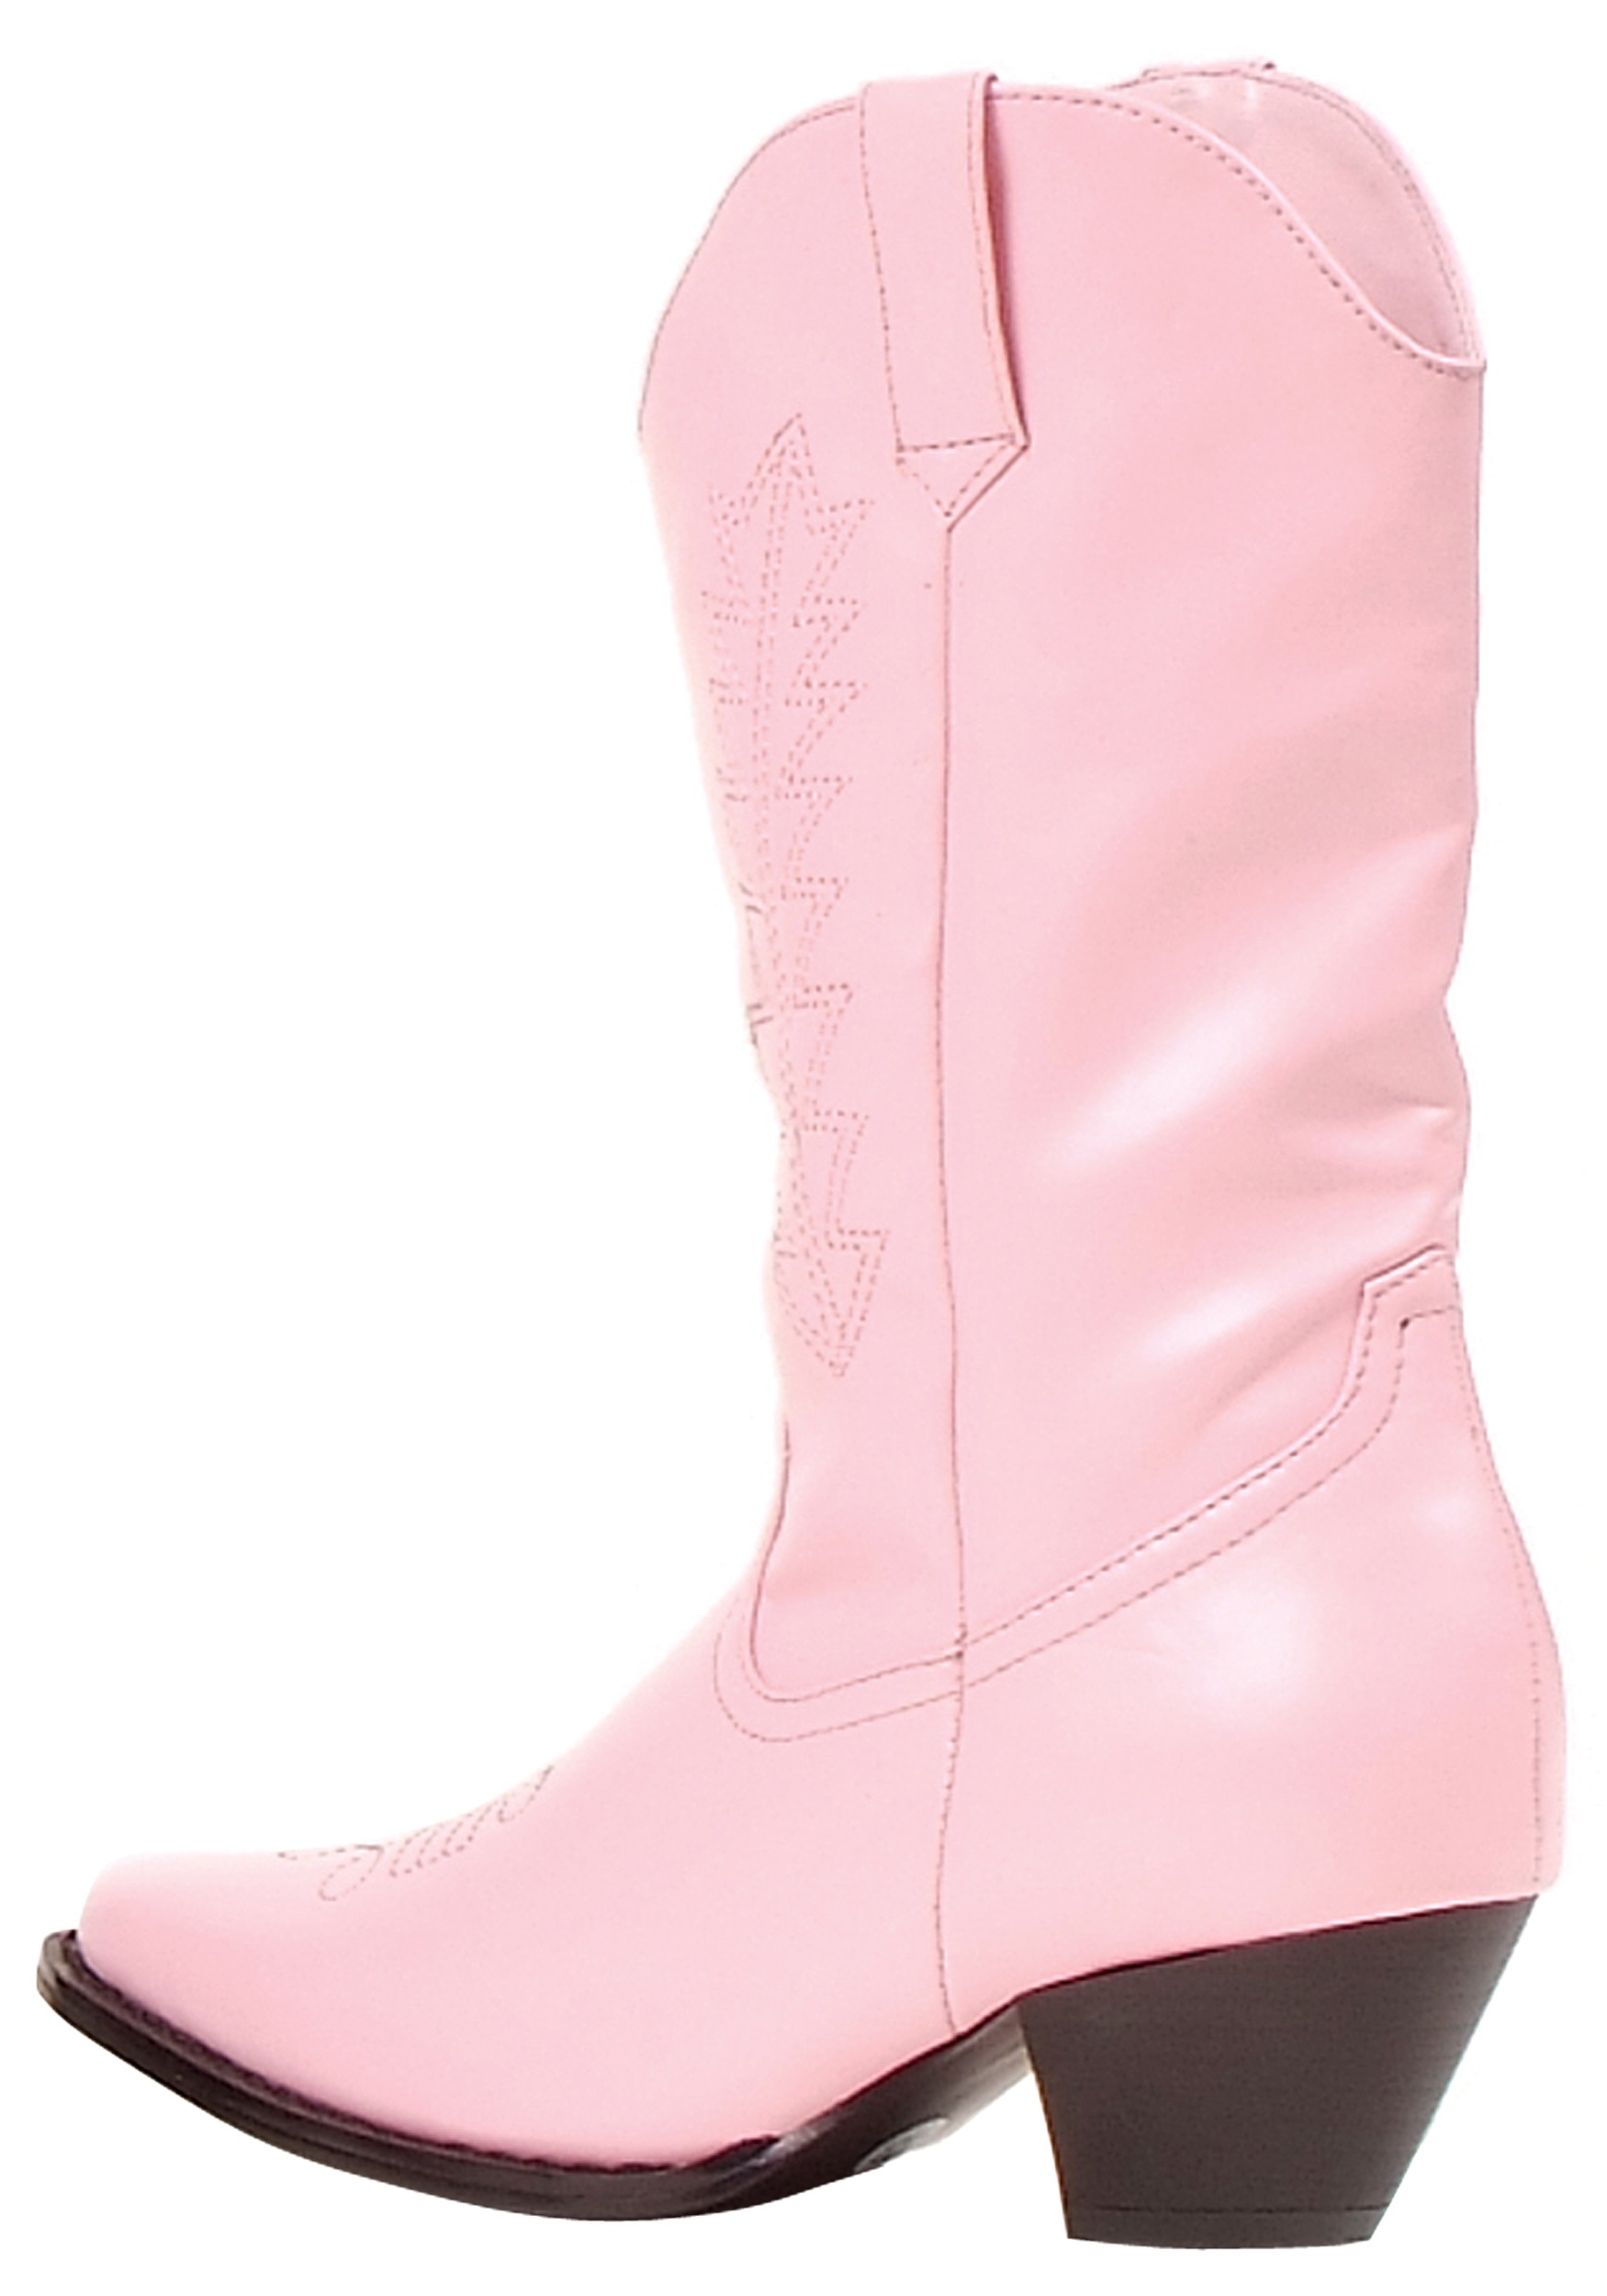 Cowboys Boots For Girls Girls Pink Cowgirl Boots